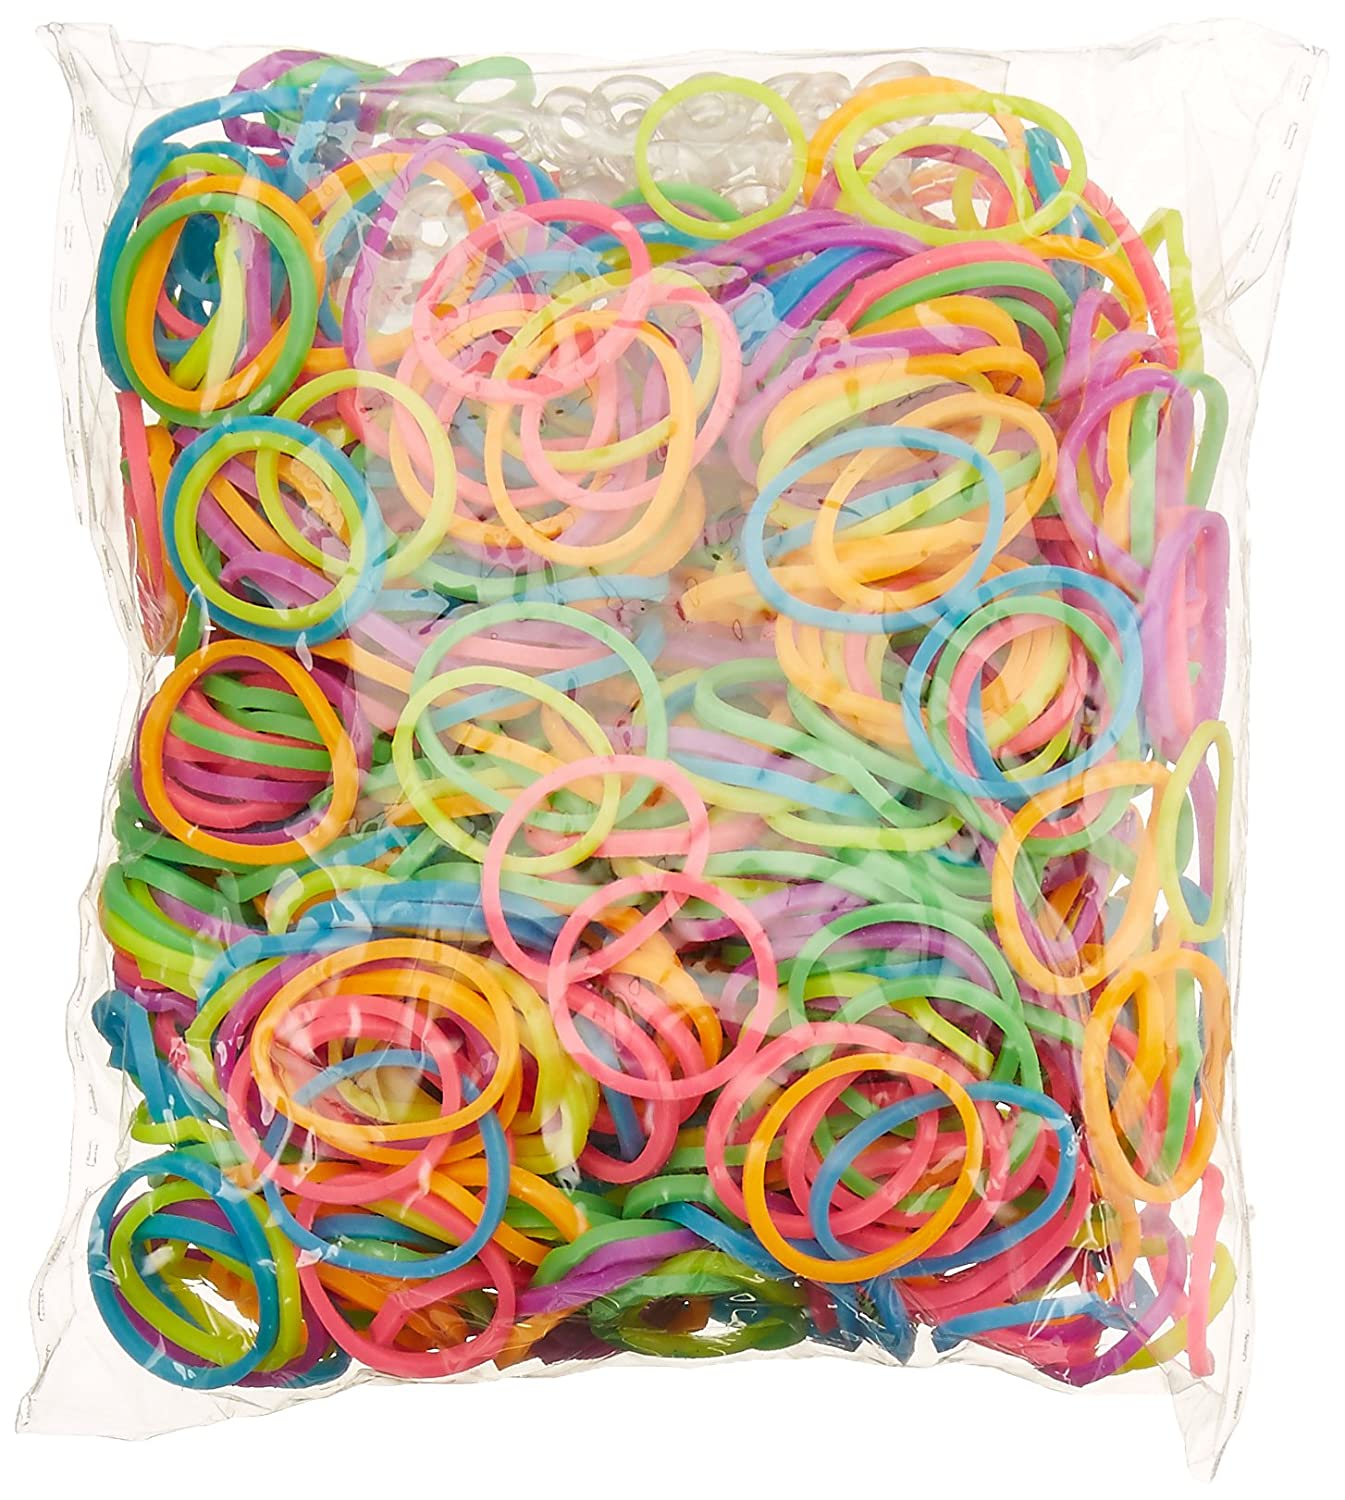 Blue Dot Trading 2400 piece neon rubber band pack 2400-Piece Neon Rubber Band Kids Craft with Rainbow Do It Yourself Bracelet Kit Refill Pack BlueDot Trading